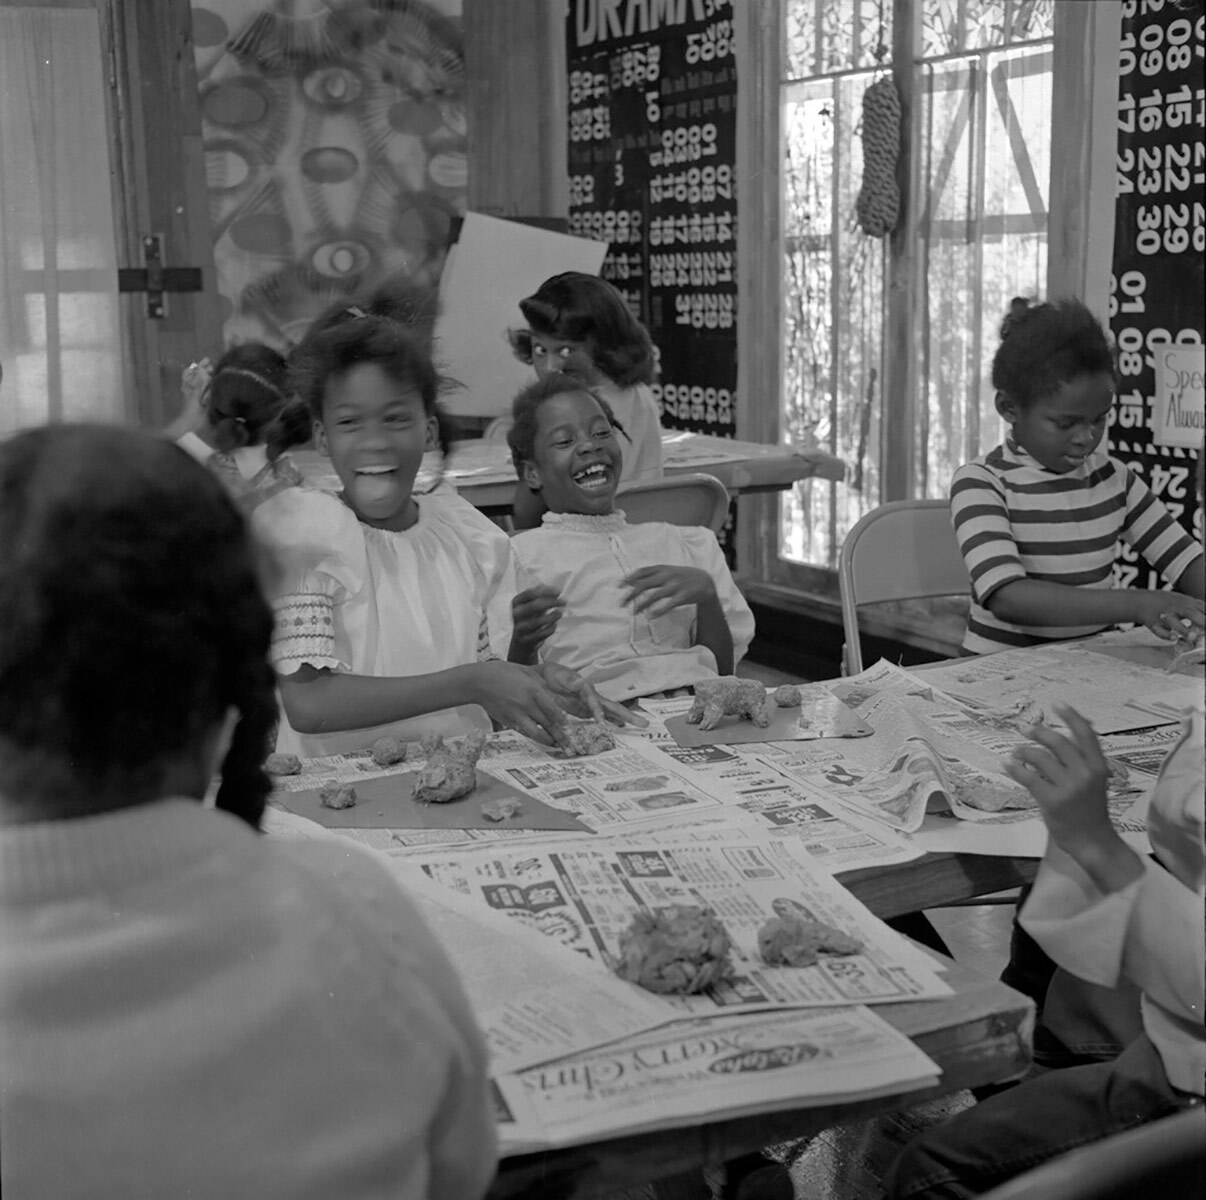 Students enjoyed a variety of art making activities and classes at the Happening House. | Courtesy of Willie Ford, Jr. and the Compton Communicative Arts Academy Collection, Special Collections and Archives, John F. Kennedy Memorial Library, California State University, Los Angeles.